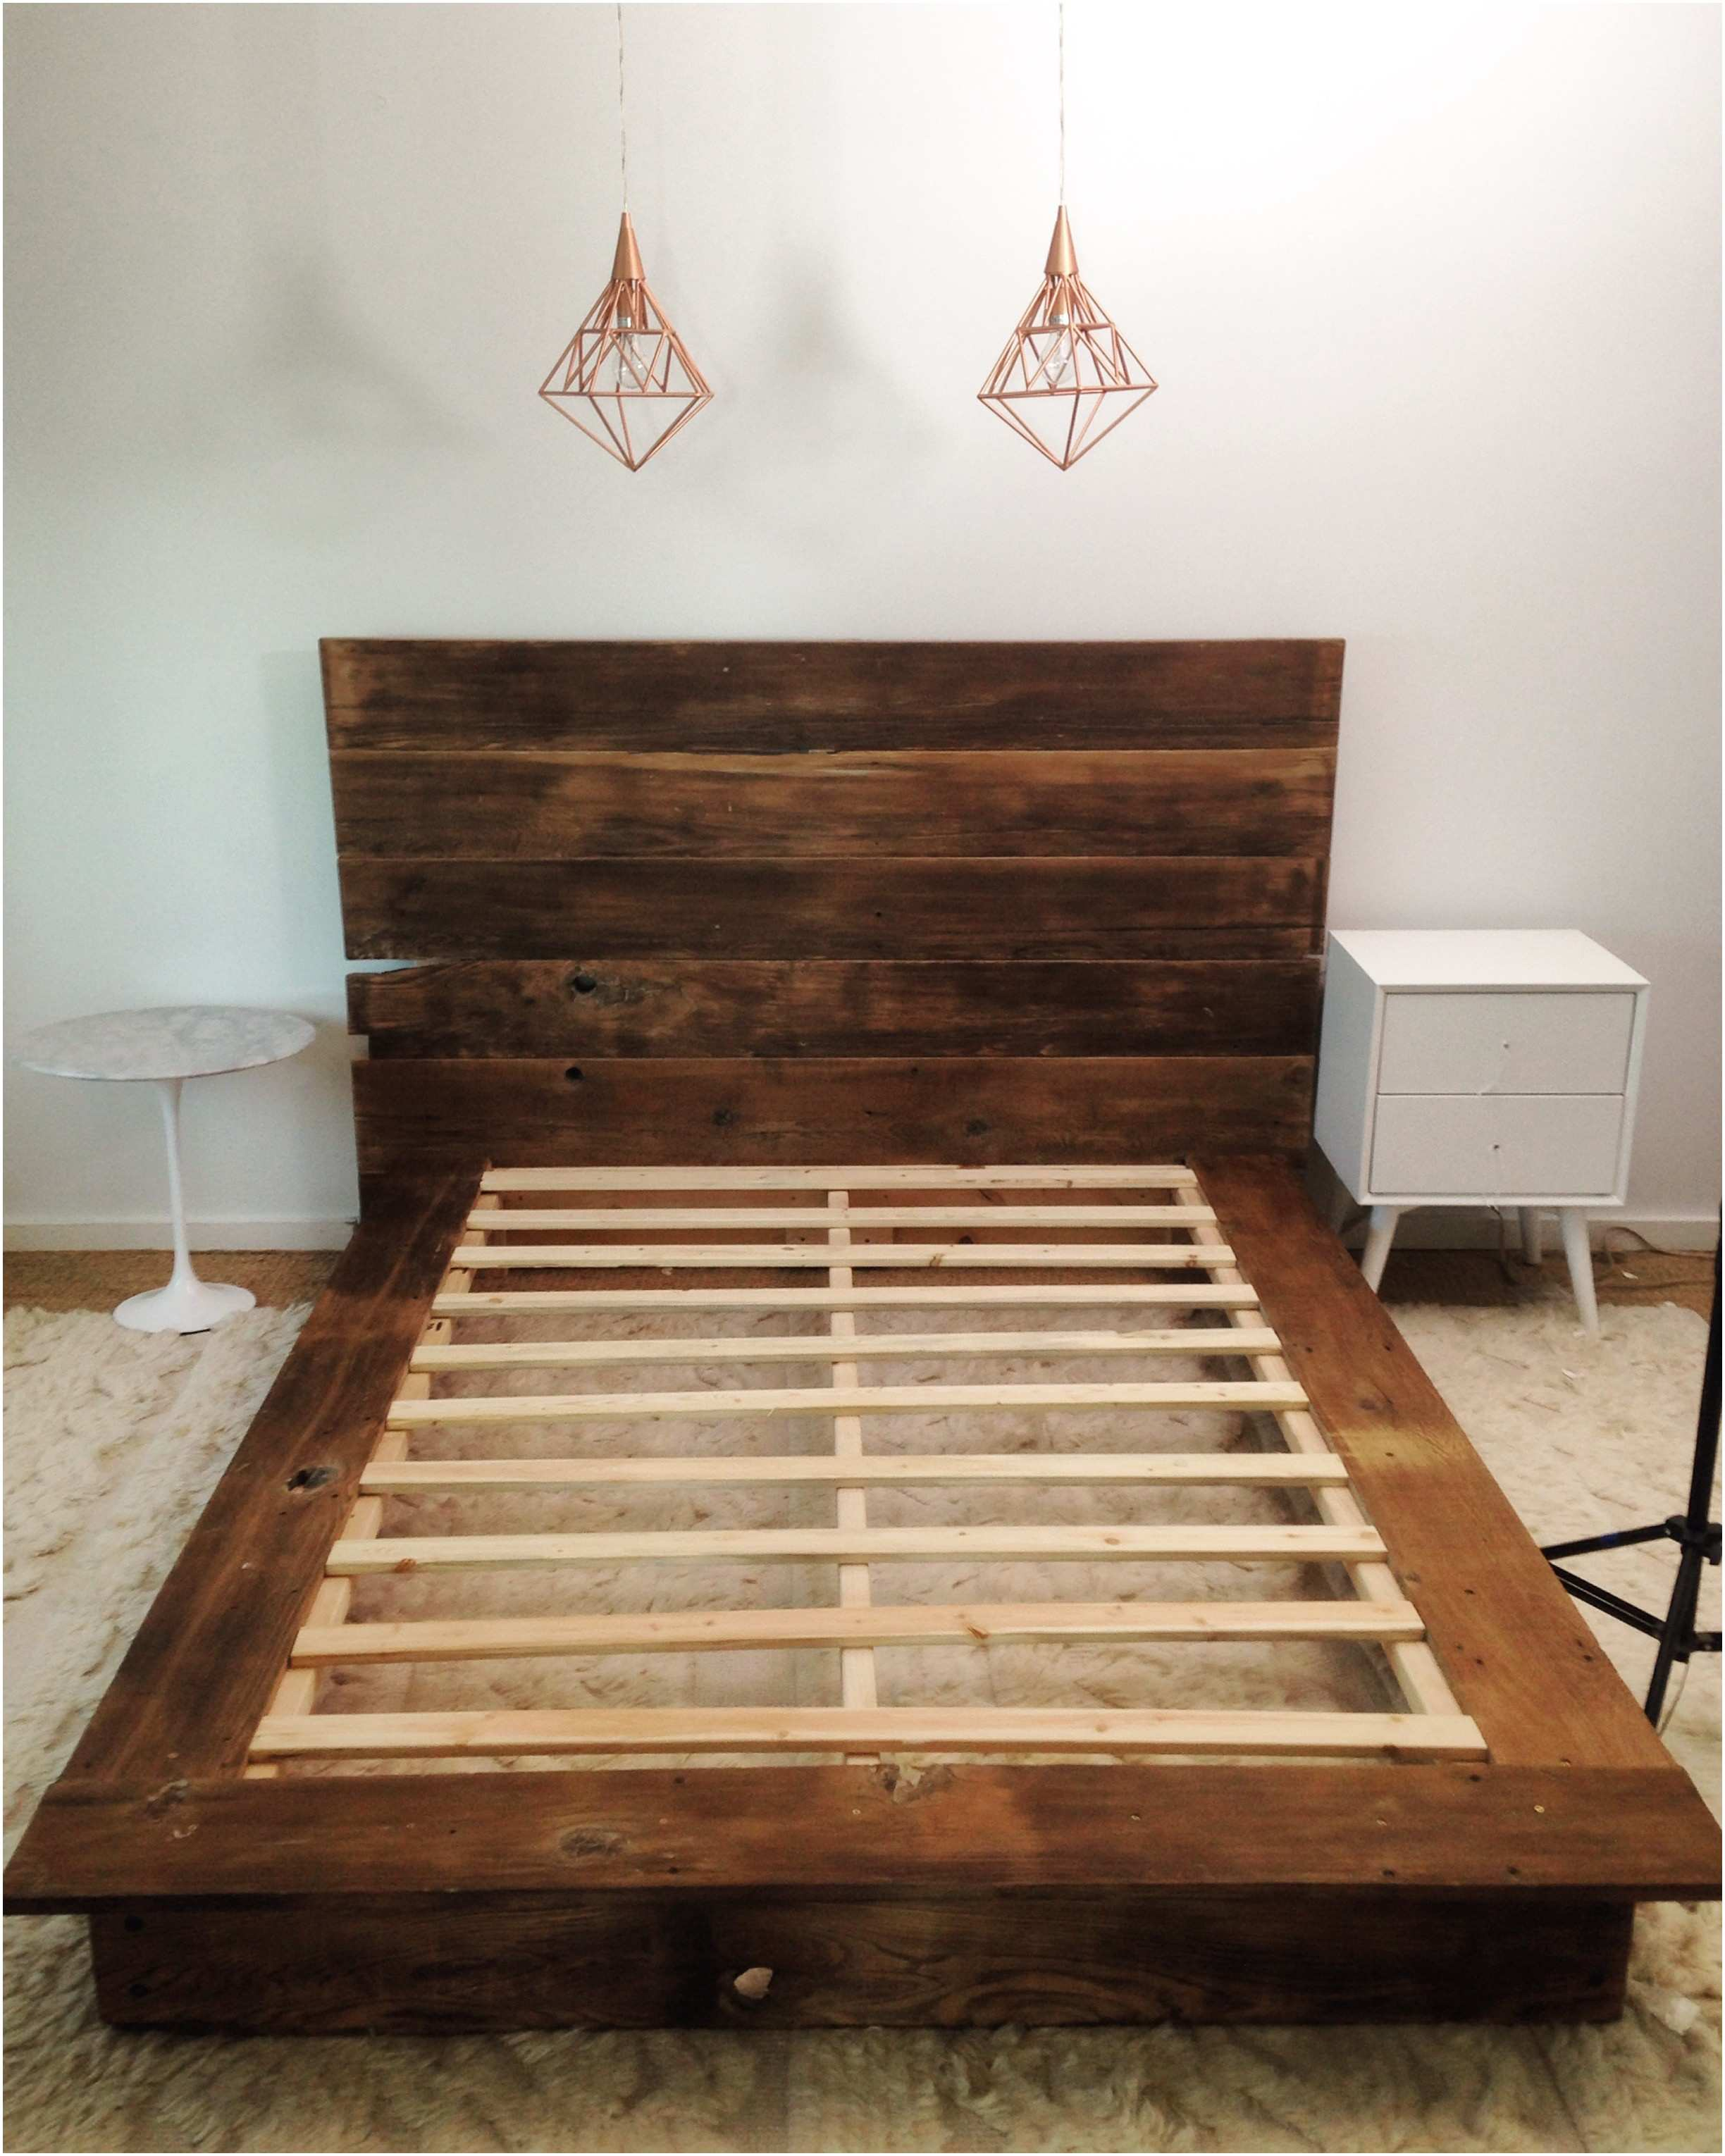 Full Bed Frame Clearance